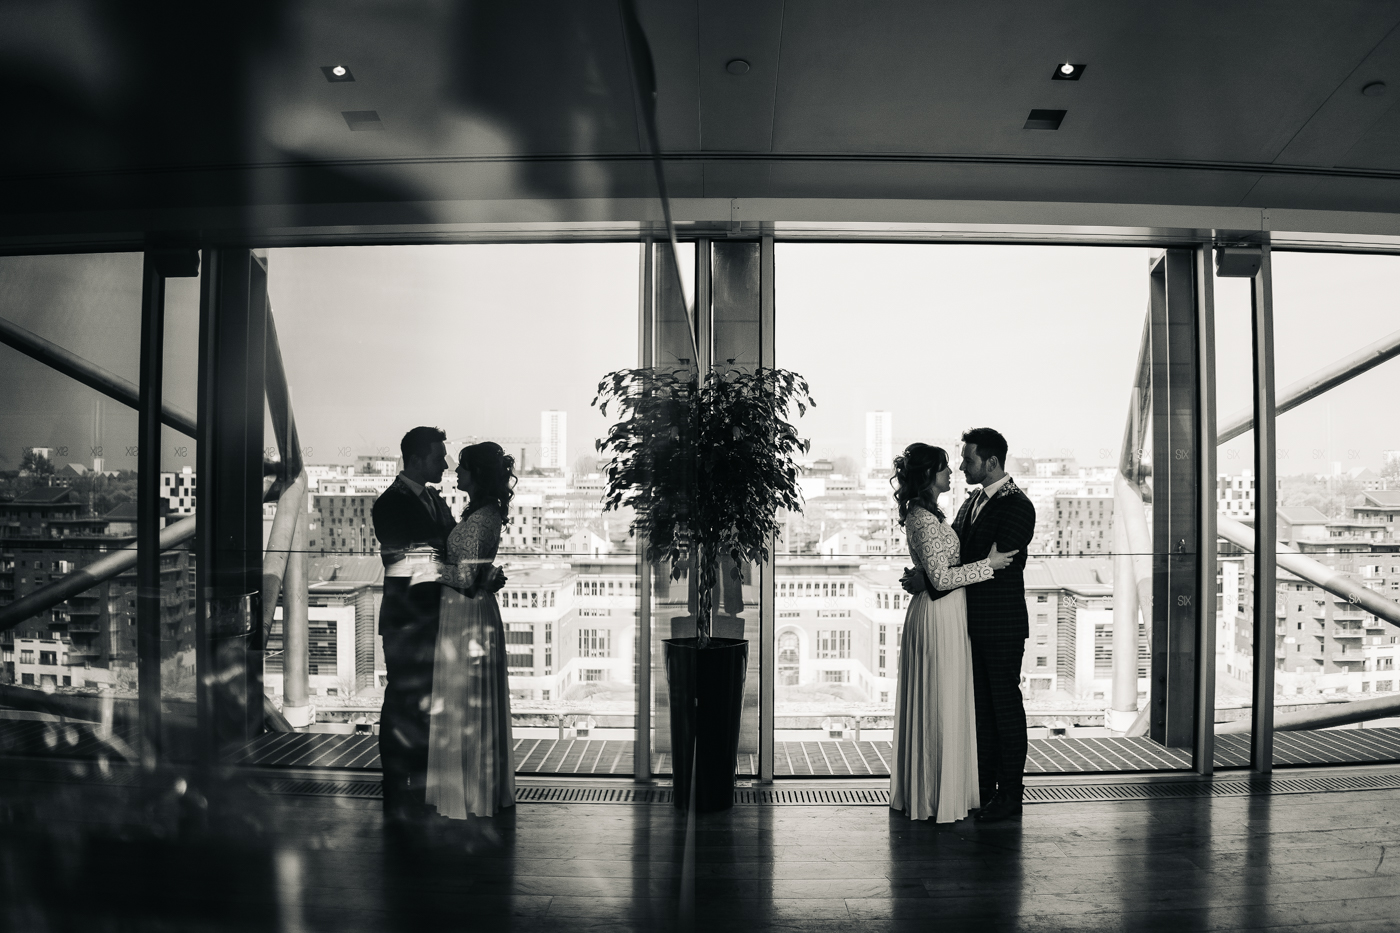 a reflection shot of the bride and groom standing by a window against the Newcastle skyline. wedding at the baltic newcastle gateshead north east photographer